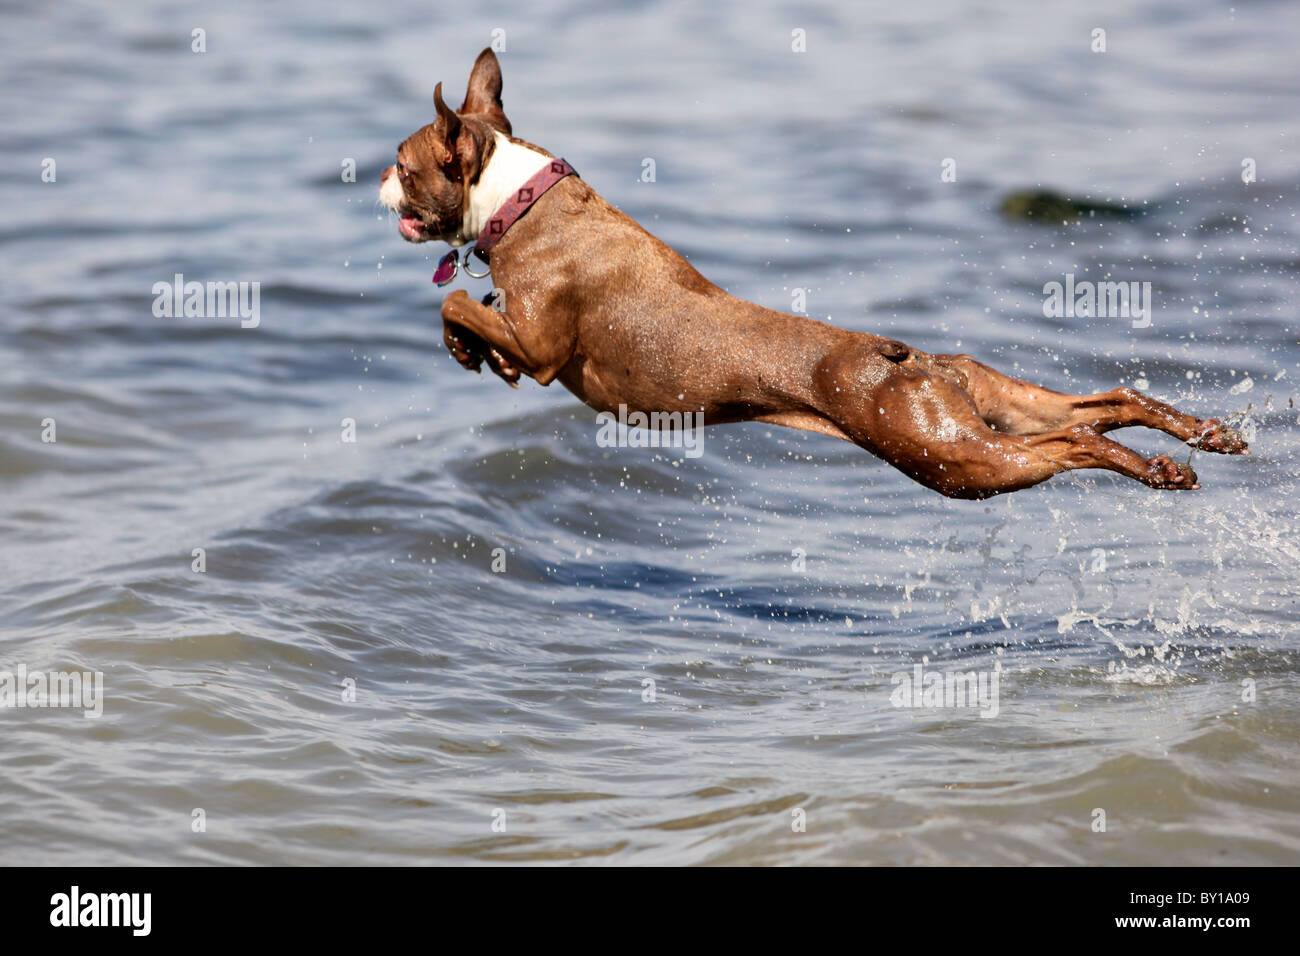 A red brown boston terrier dog leaps into the water flying in mid air Stock Photo